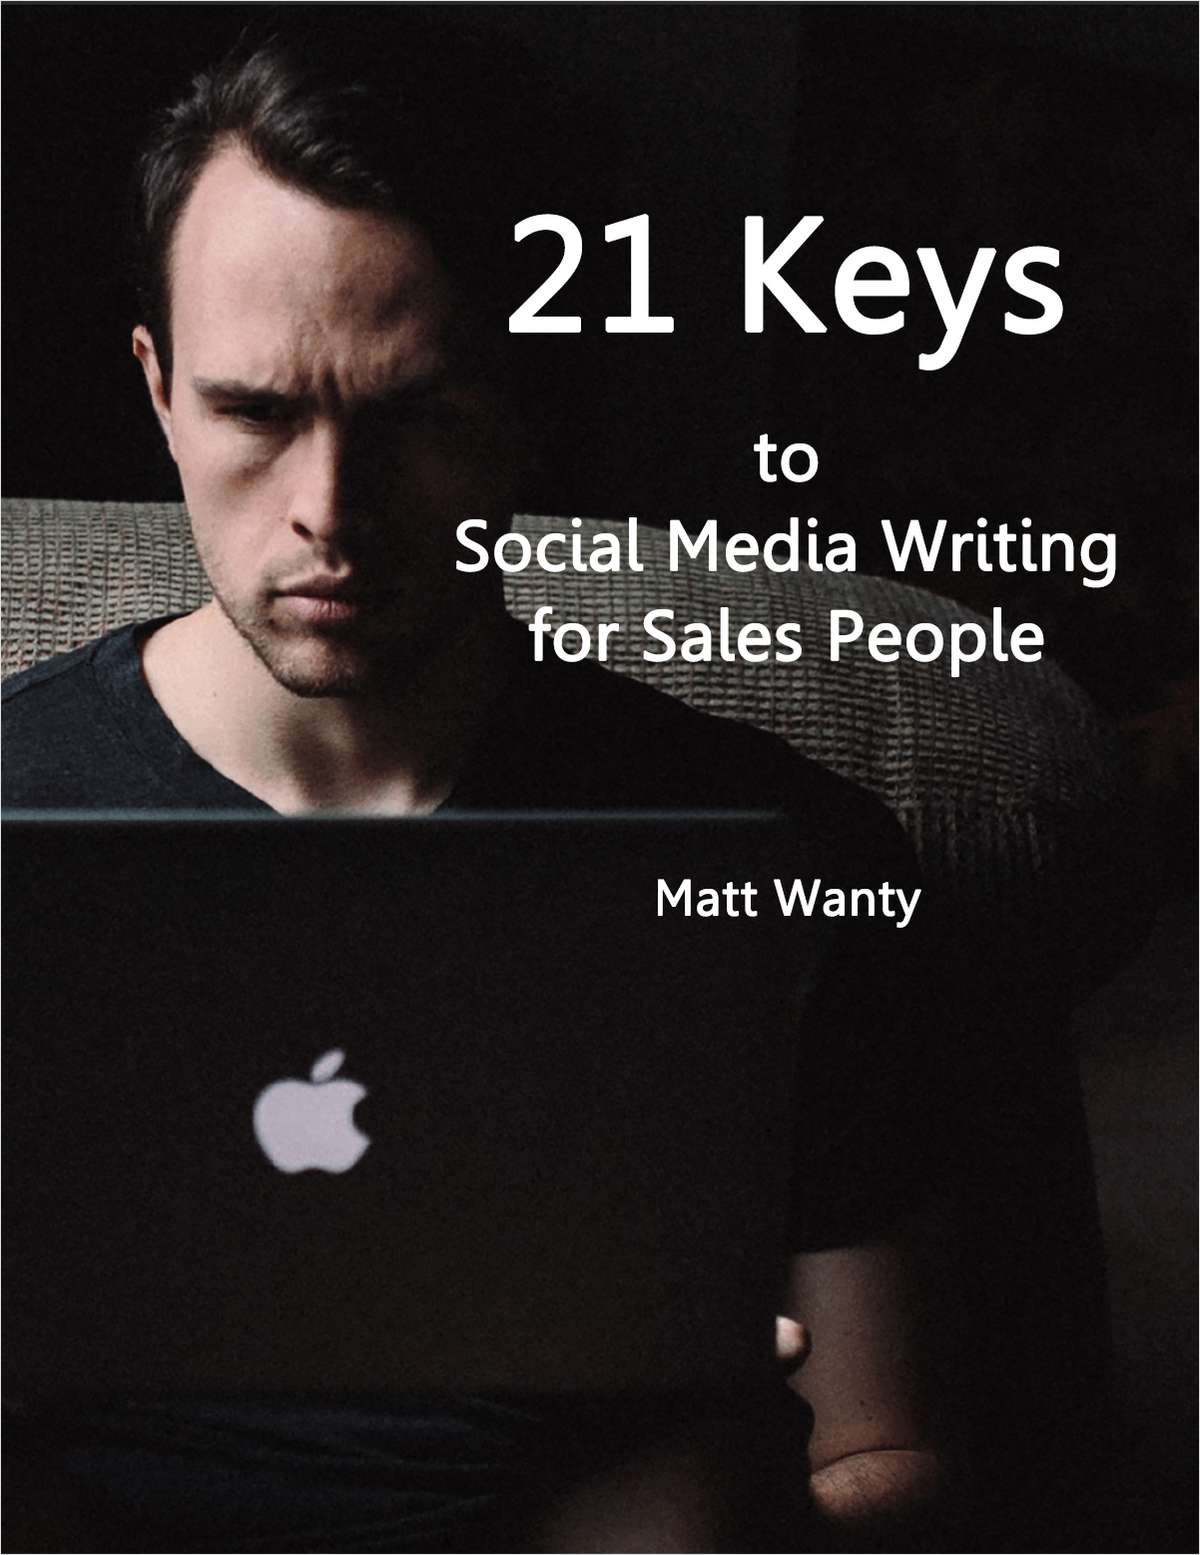 21 Keys to Social Media Writing